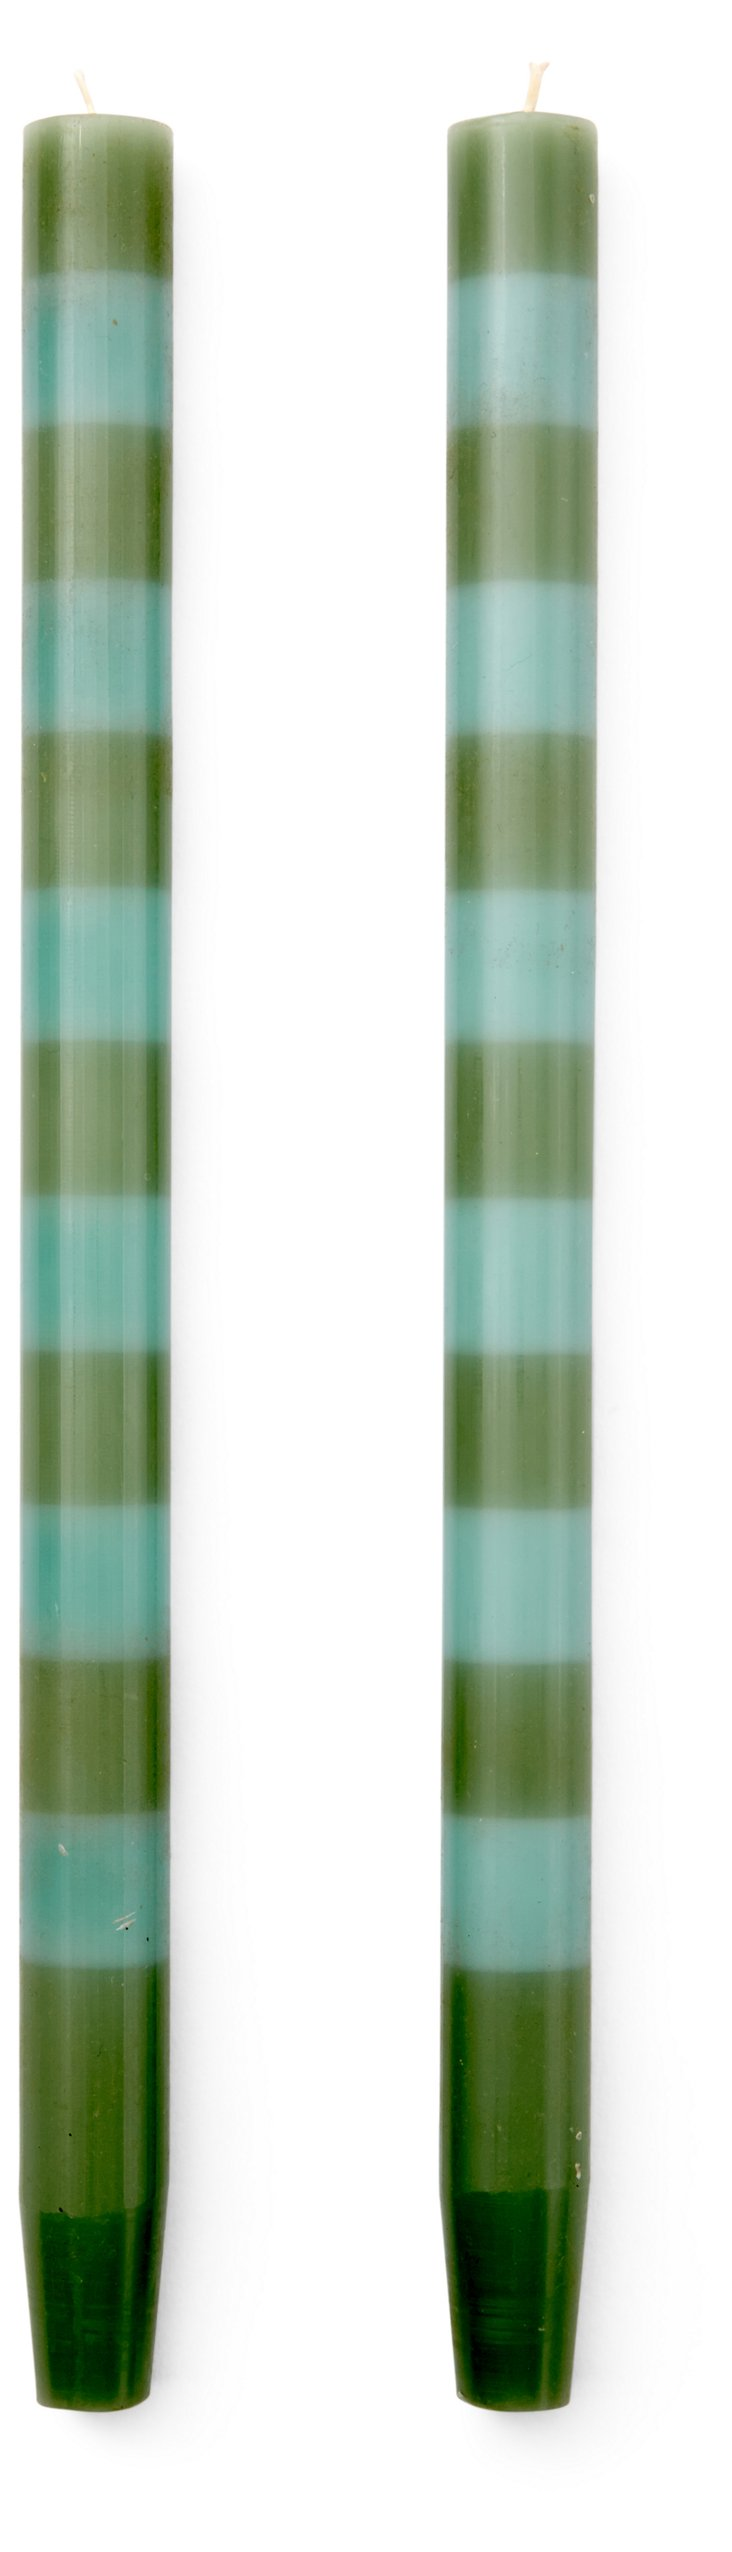 S/4 Taper Candles, Sage/Cyan